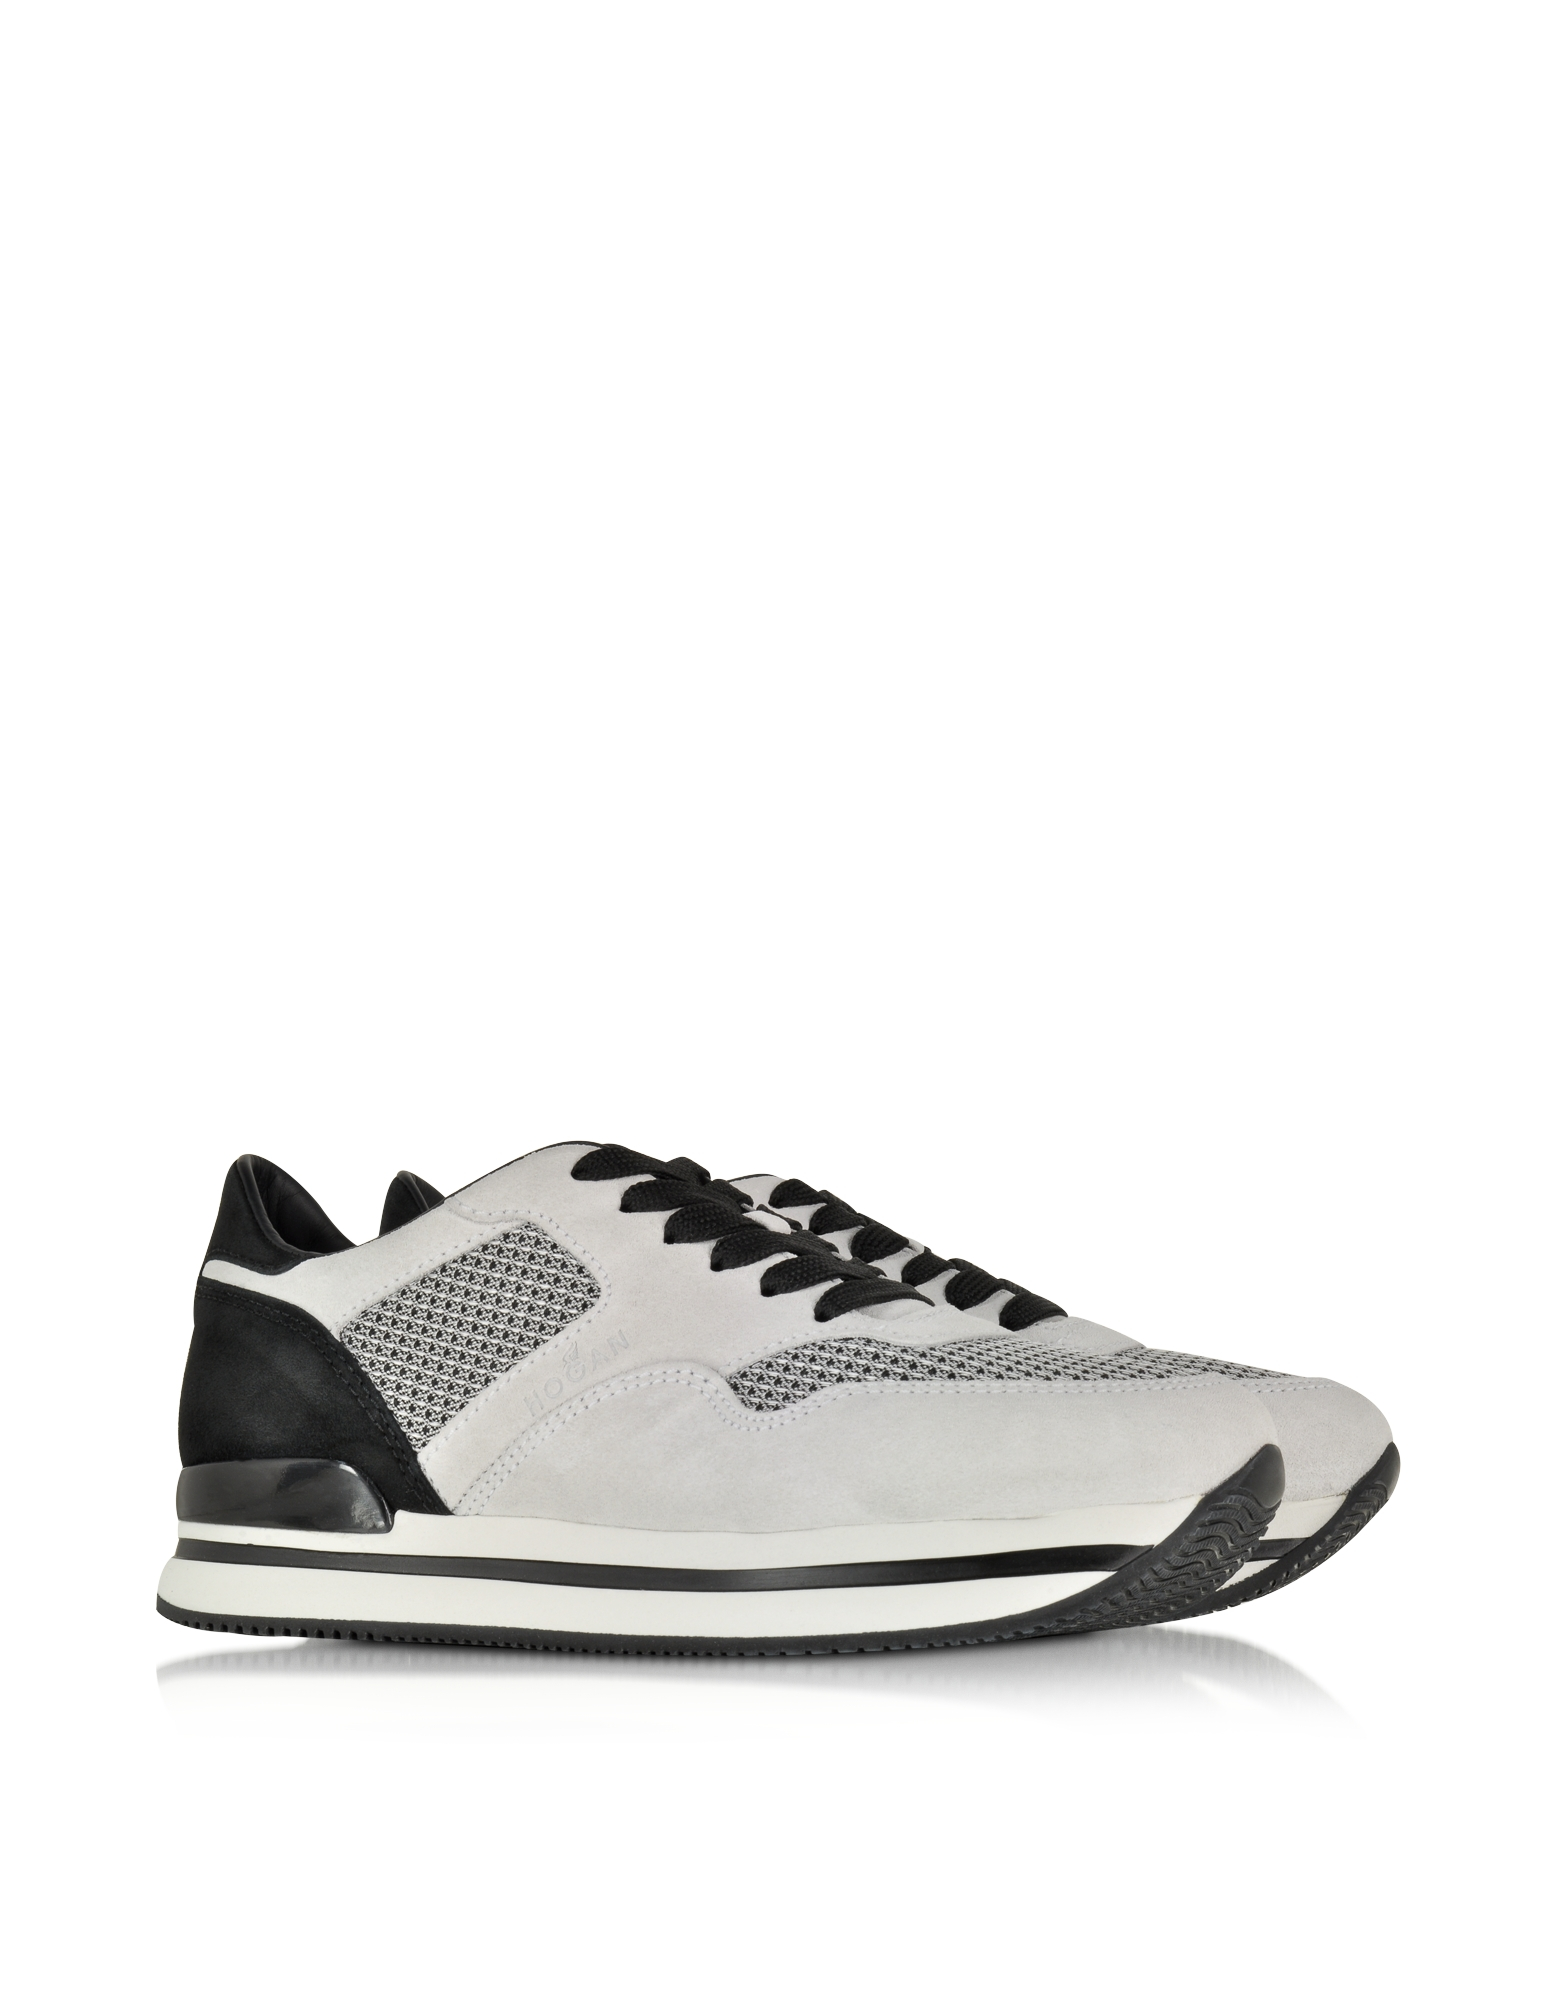 Forzieri Hogan Hogan Black And Off White Suede Sneaker In Black Lyst